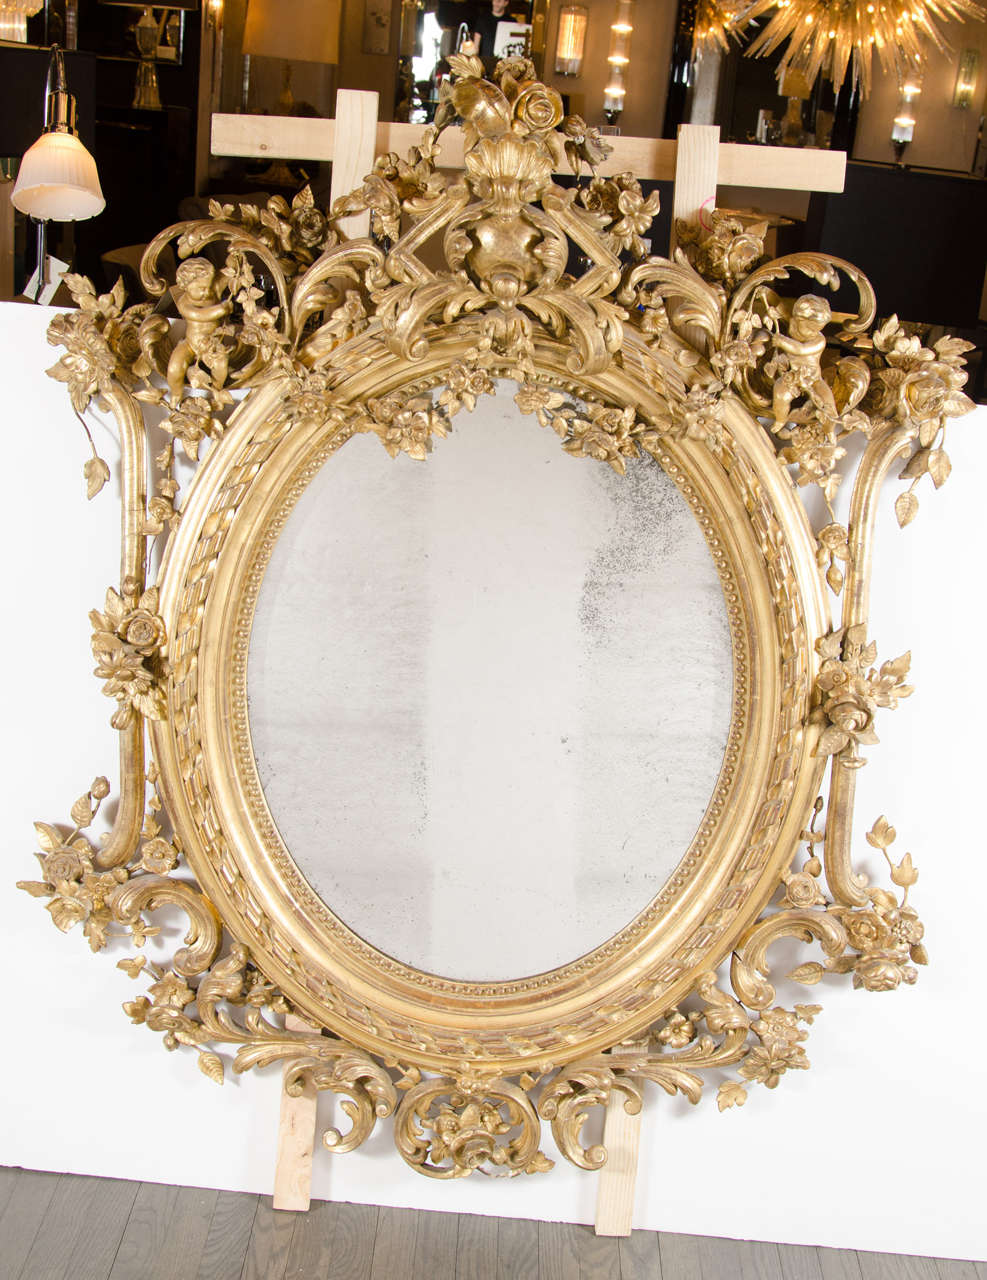 Magnificent 19th Century French Rococo Oval Mirror With 24k Gold Gilt Details And Stylized Foliage Detailing